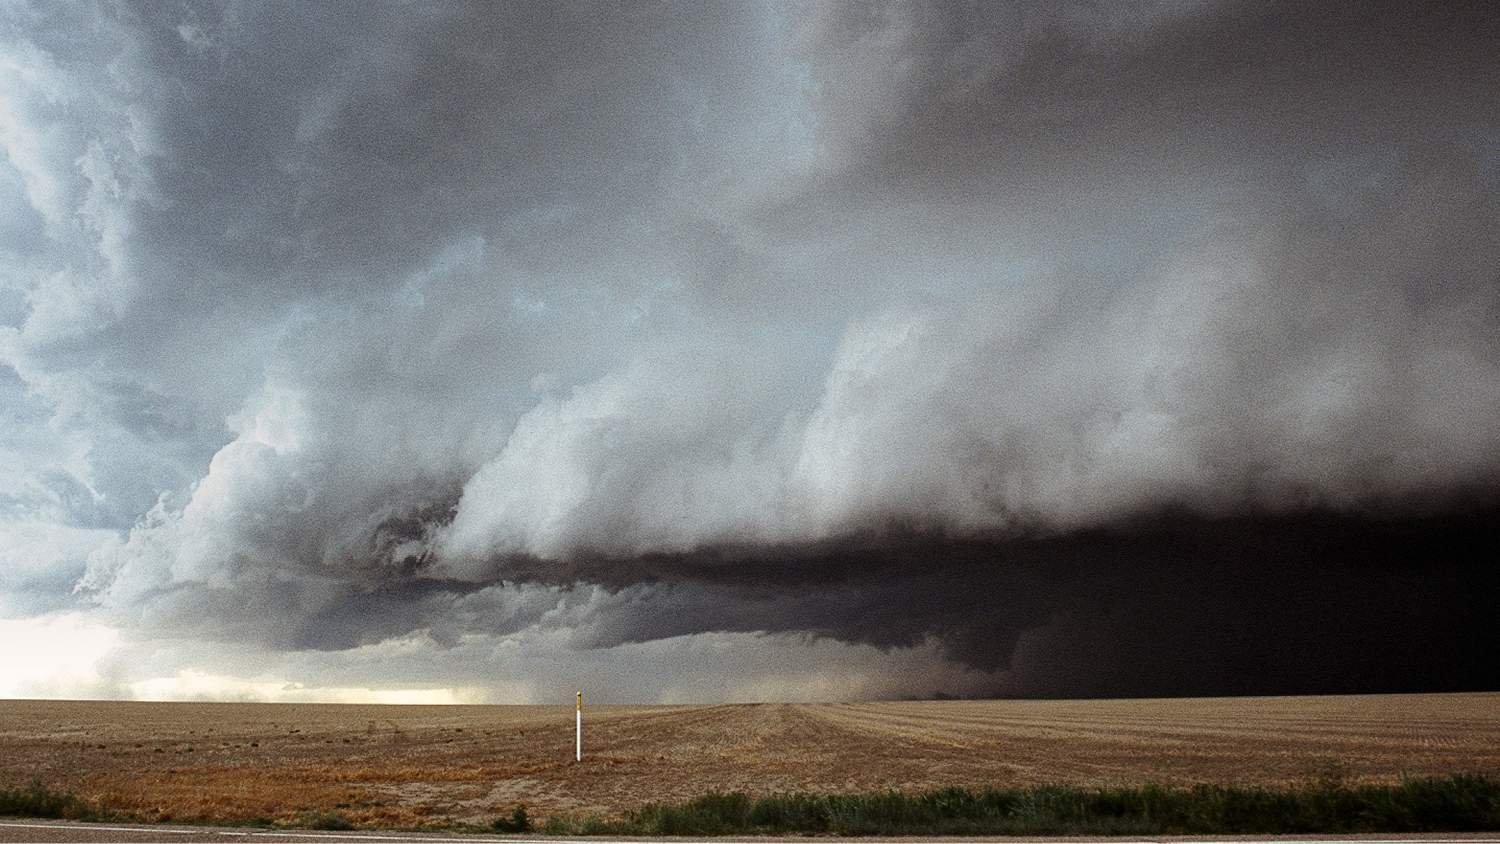 Tornado in the plains